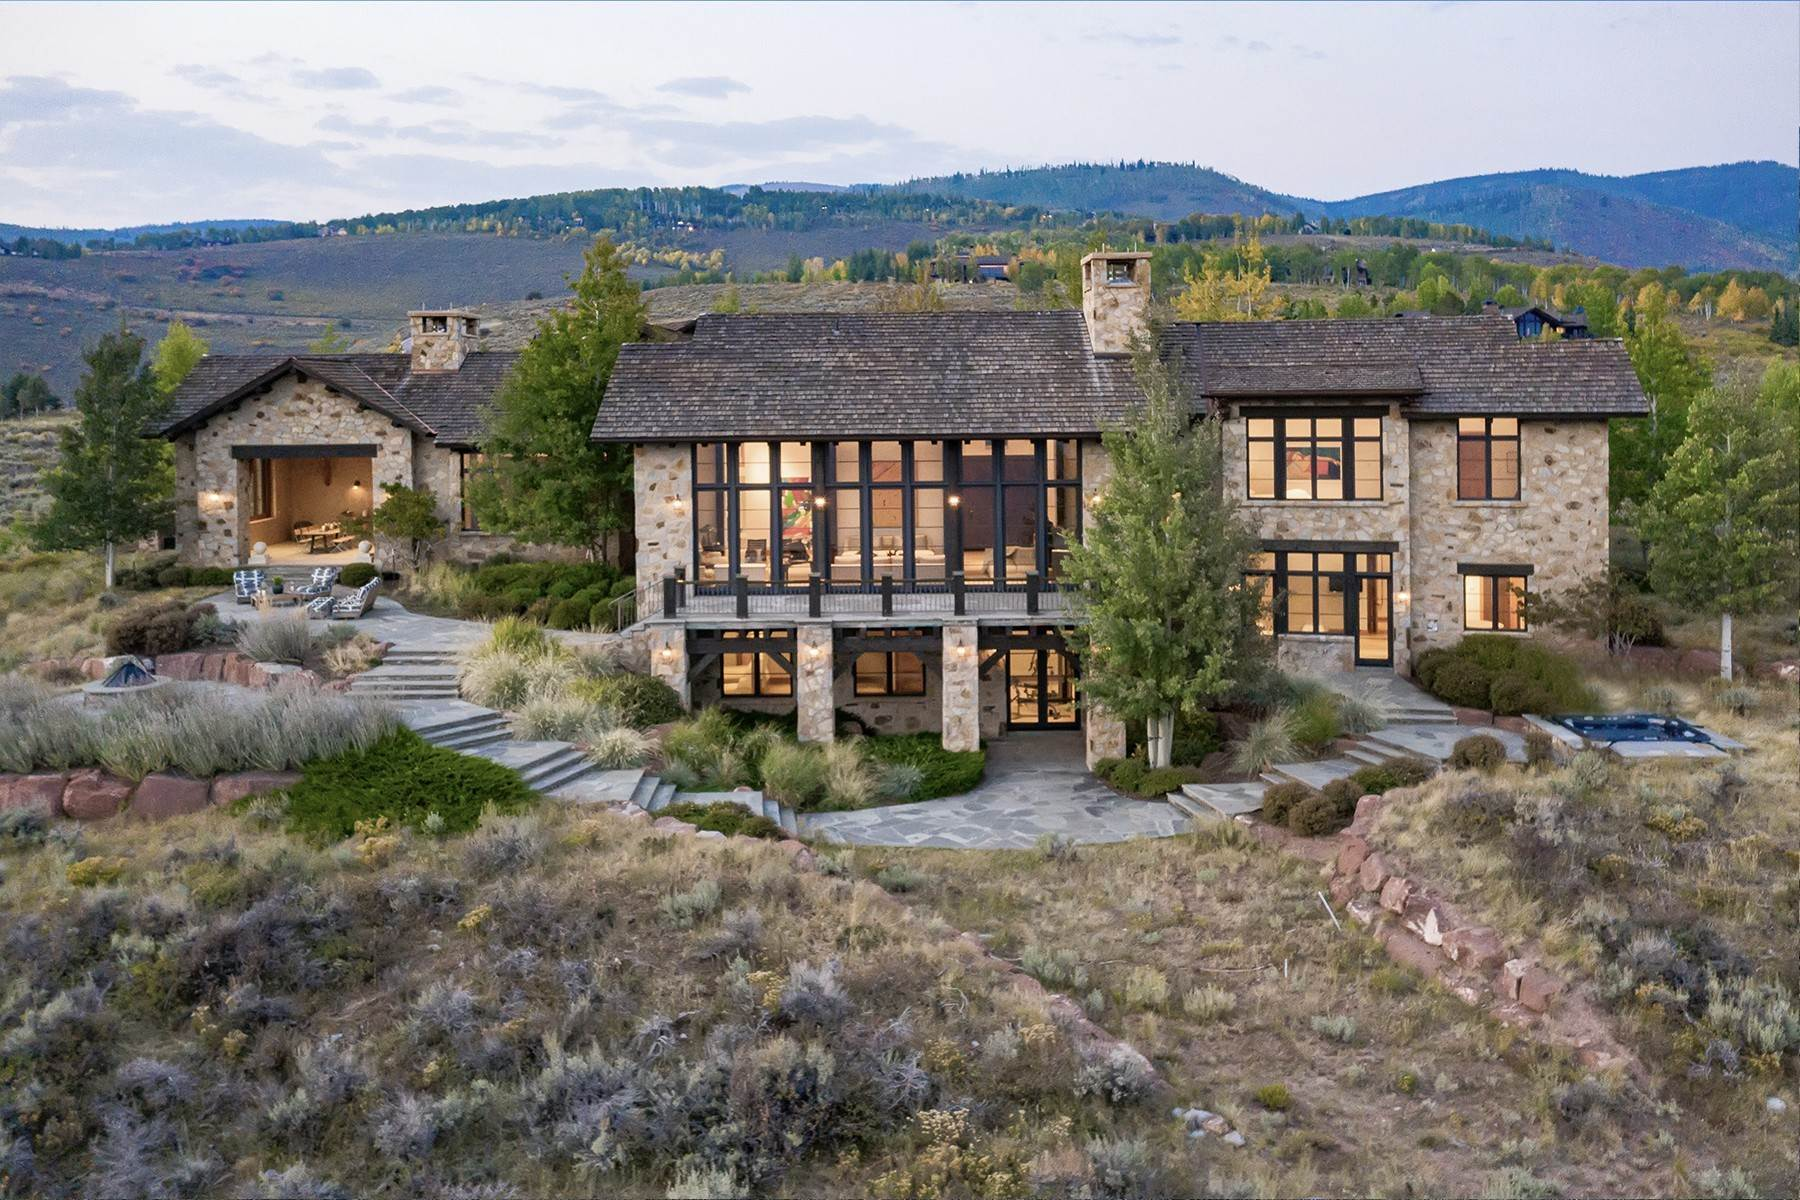 Single Family Homes for Active at Modern Mountaintop Luxury with Spectacular Views 587 Paintbrush Avon, Colorado 81620 United States